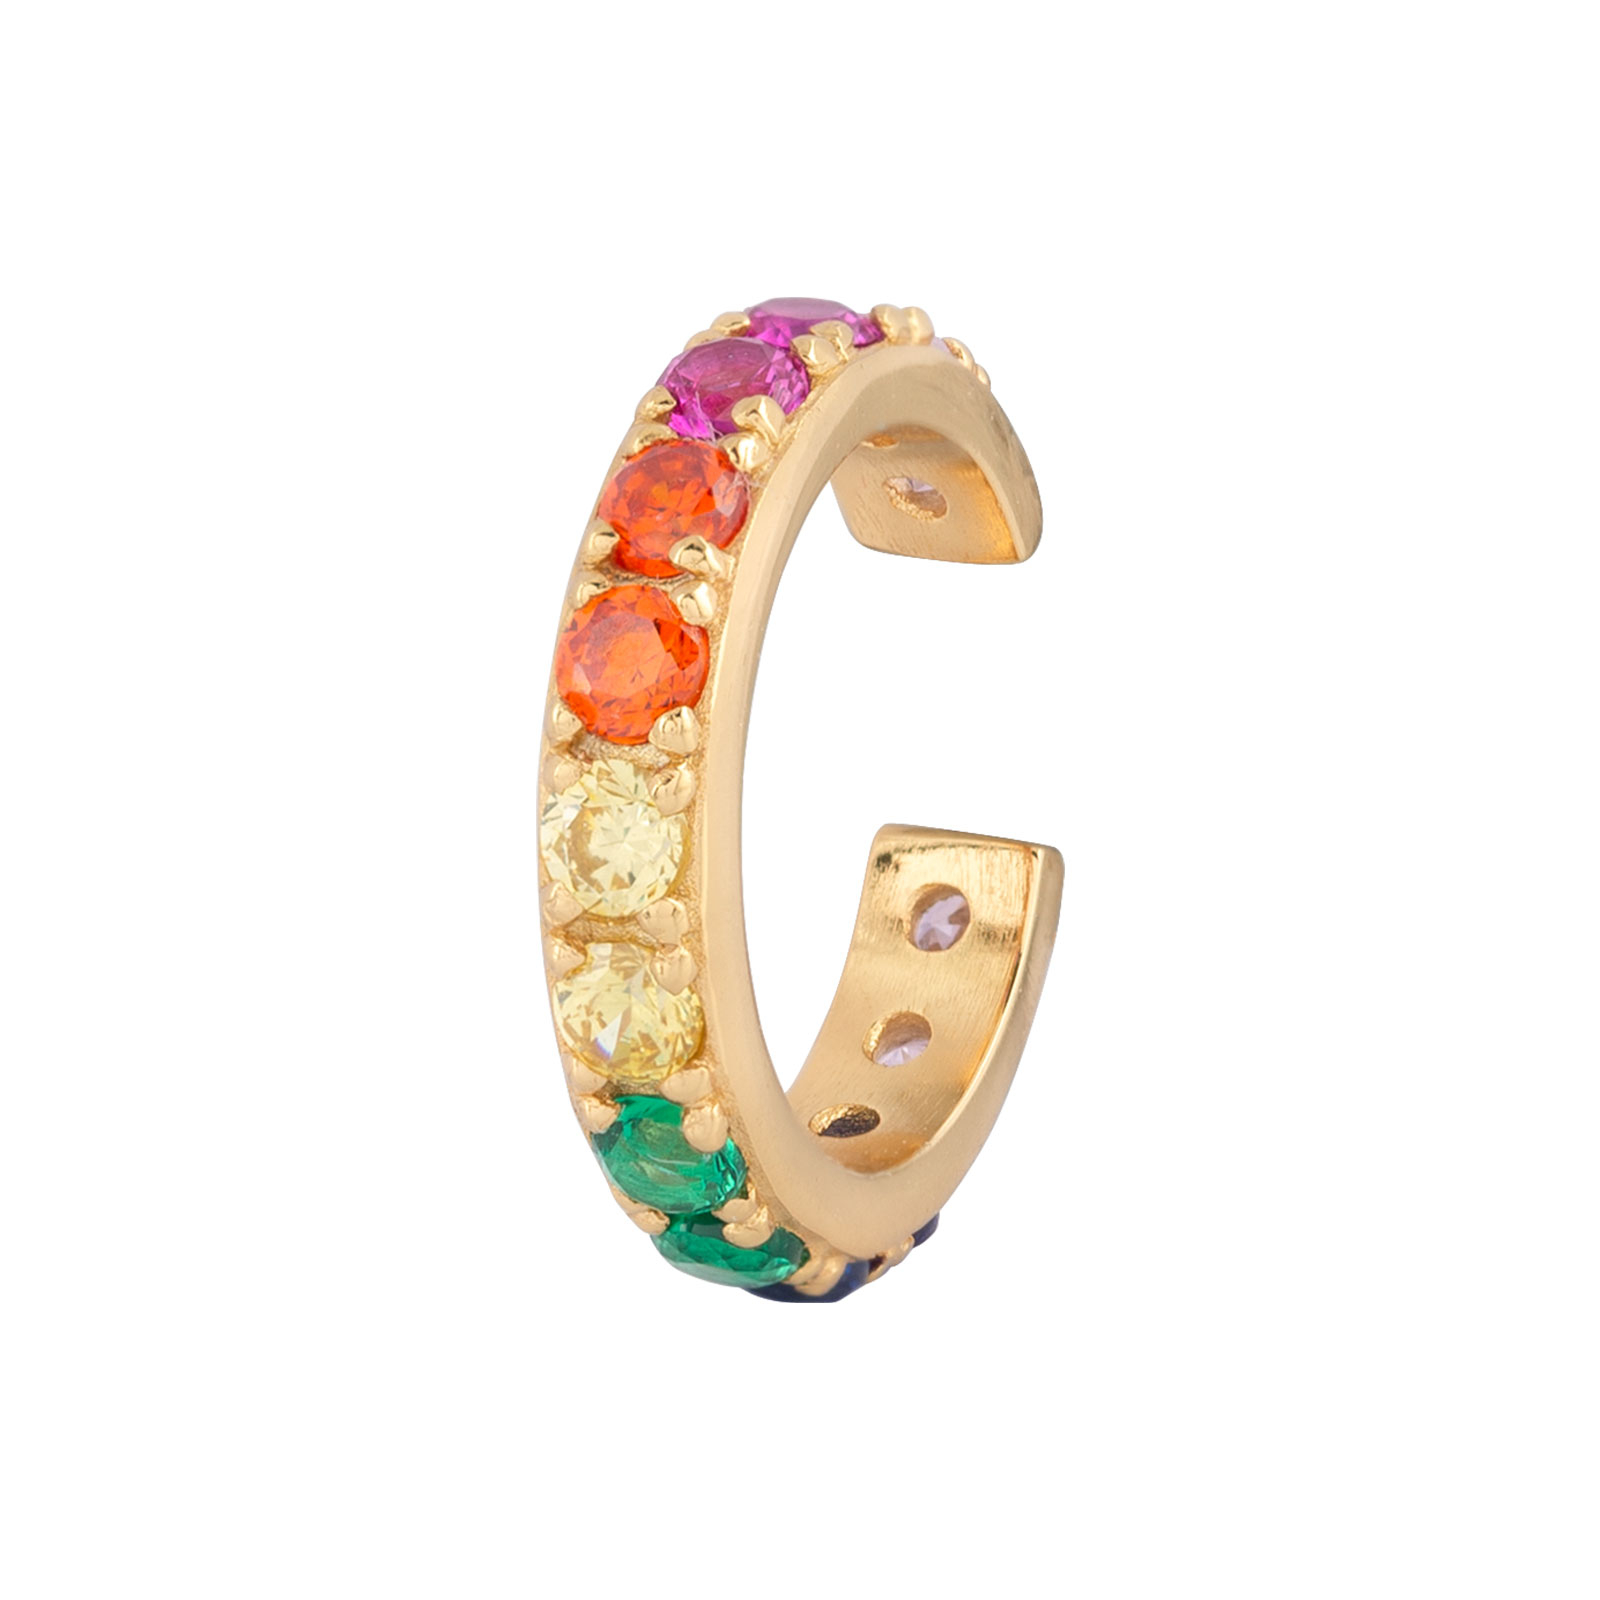 Ear Cuff Sterling Silver 925 Multicolor